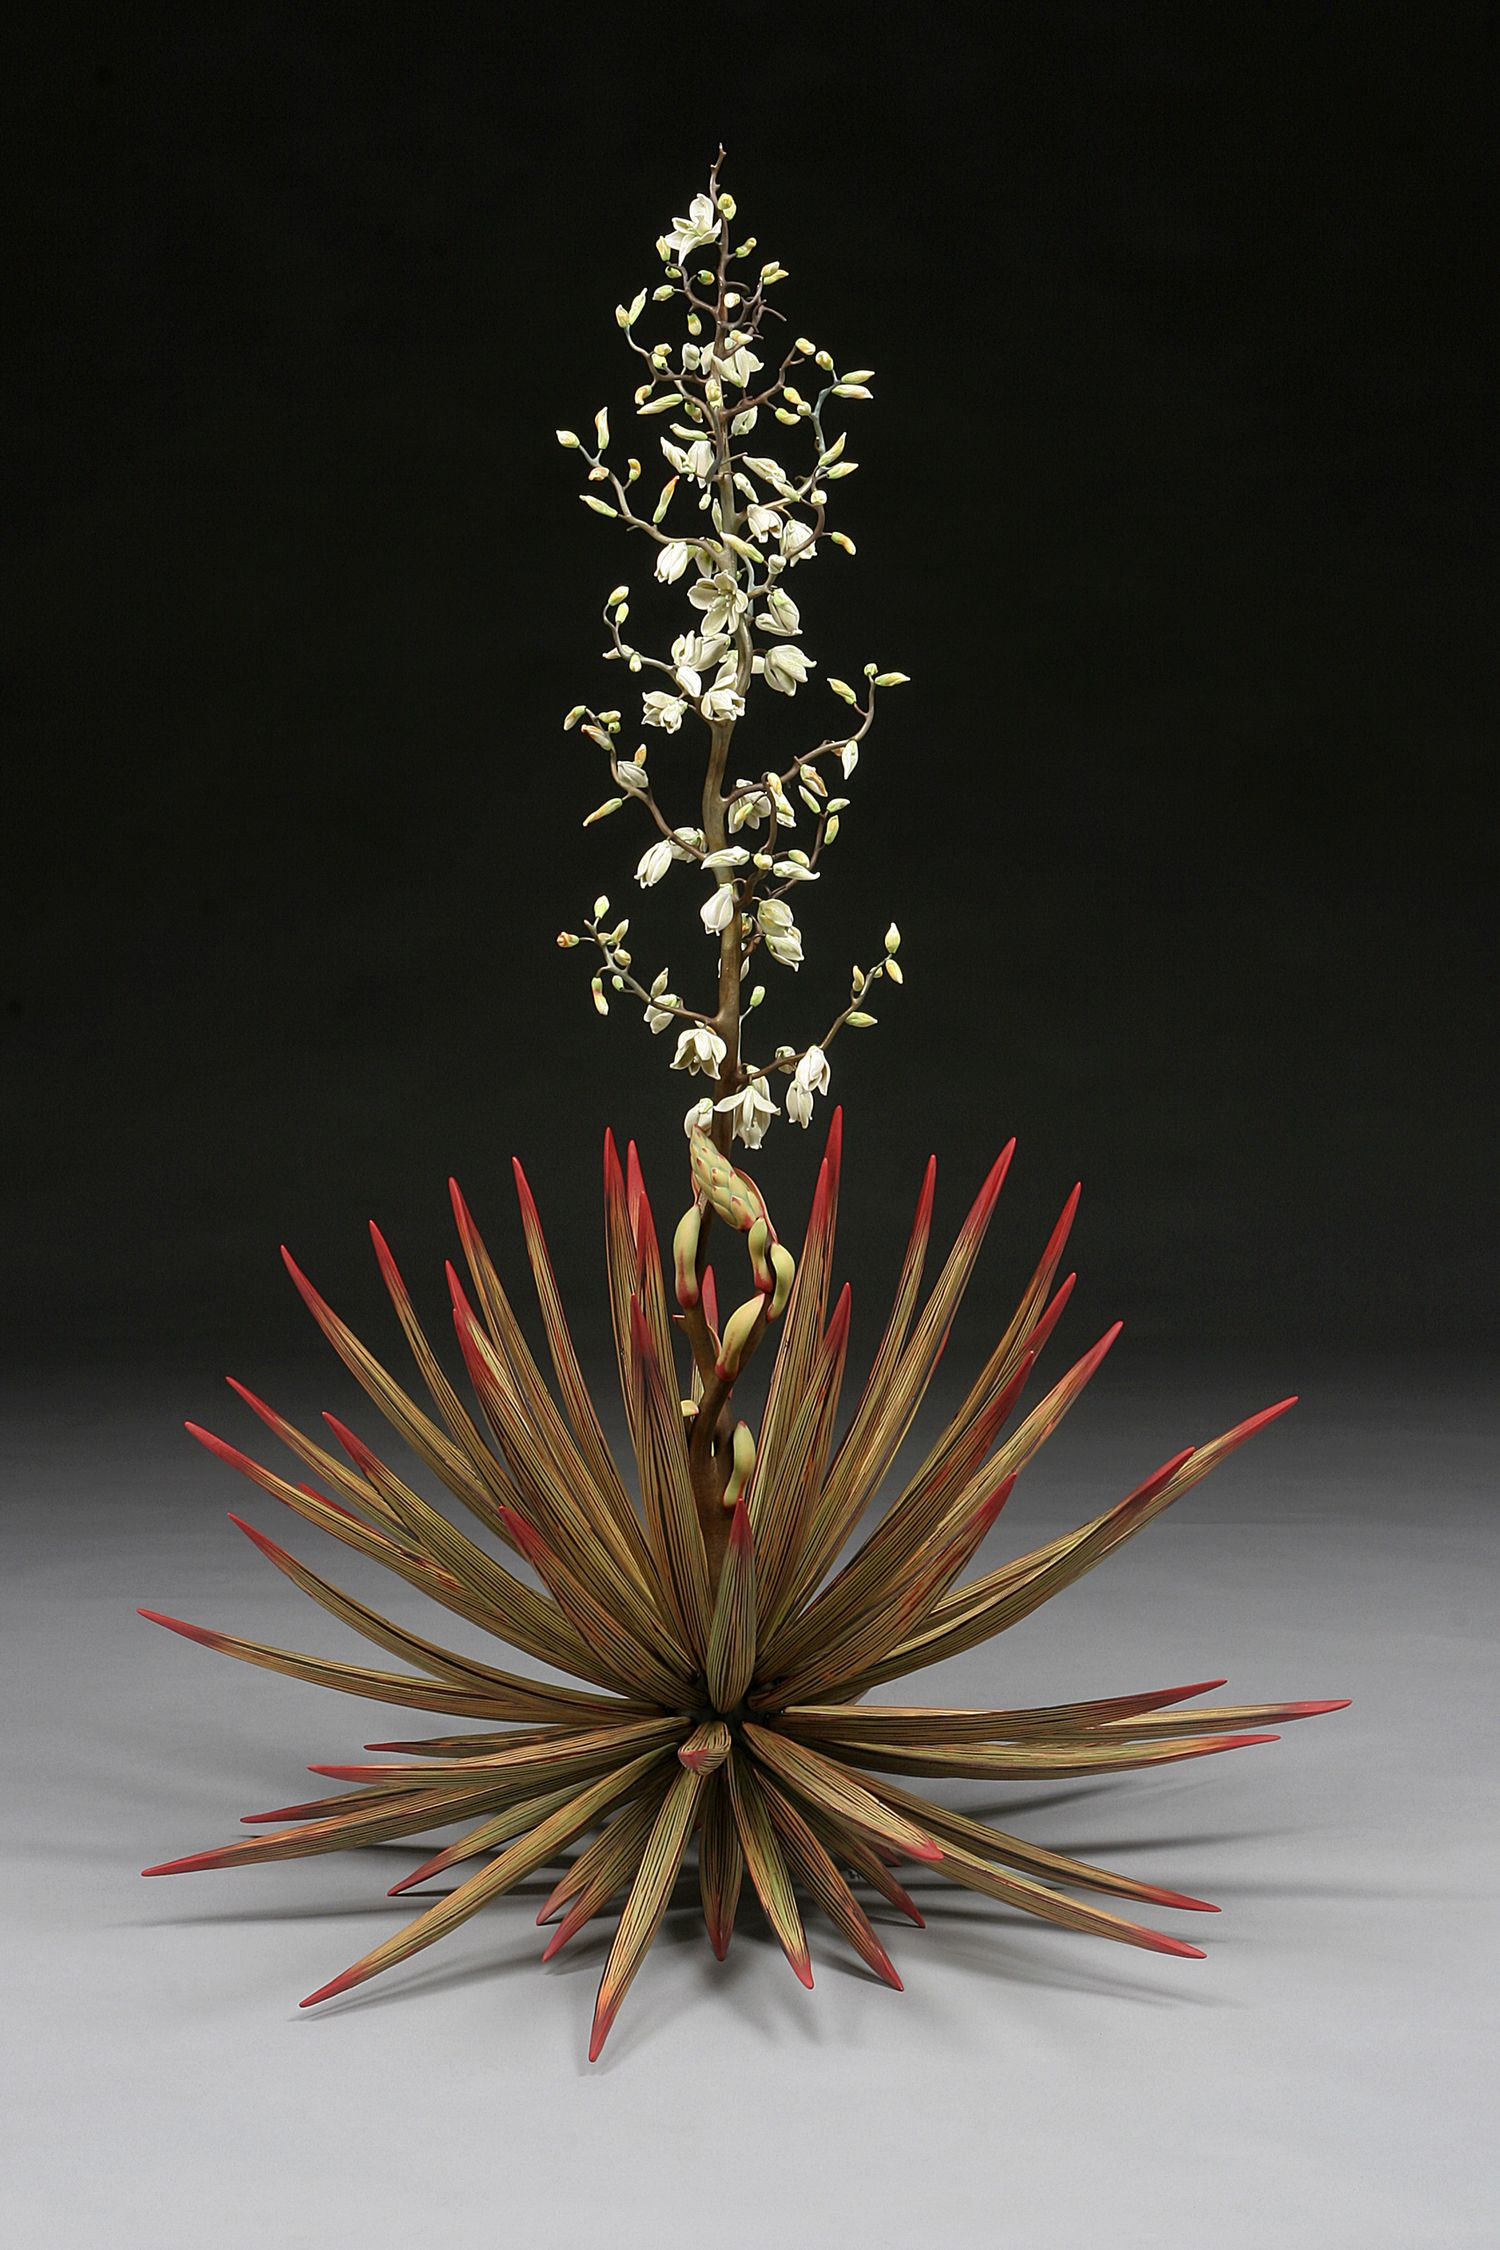 Michael Sherrill Yucca Temple of the Cool Beauty, 54%22h x 38%22w, Silica bronze, porcelain with abraded glaze, Moretti glass.jpg